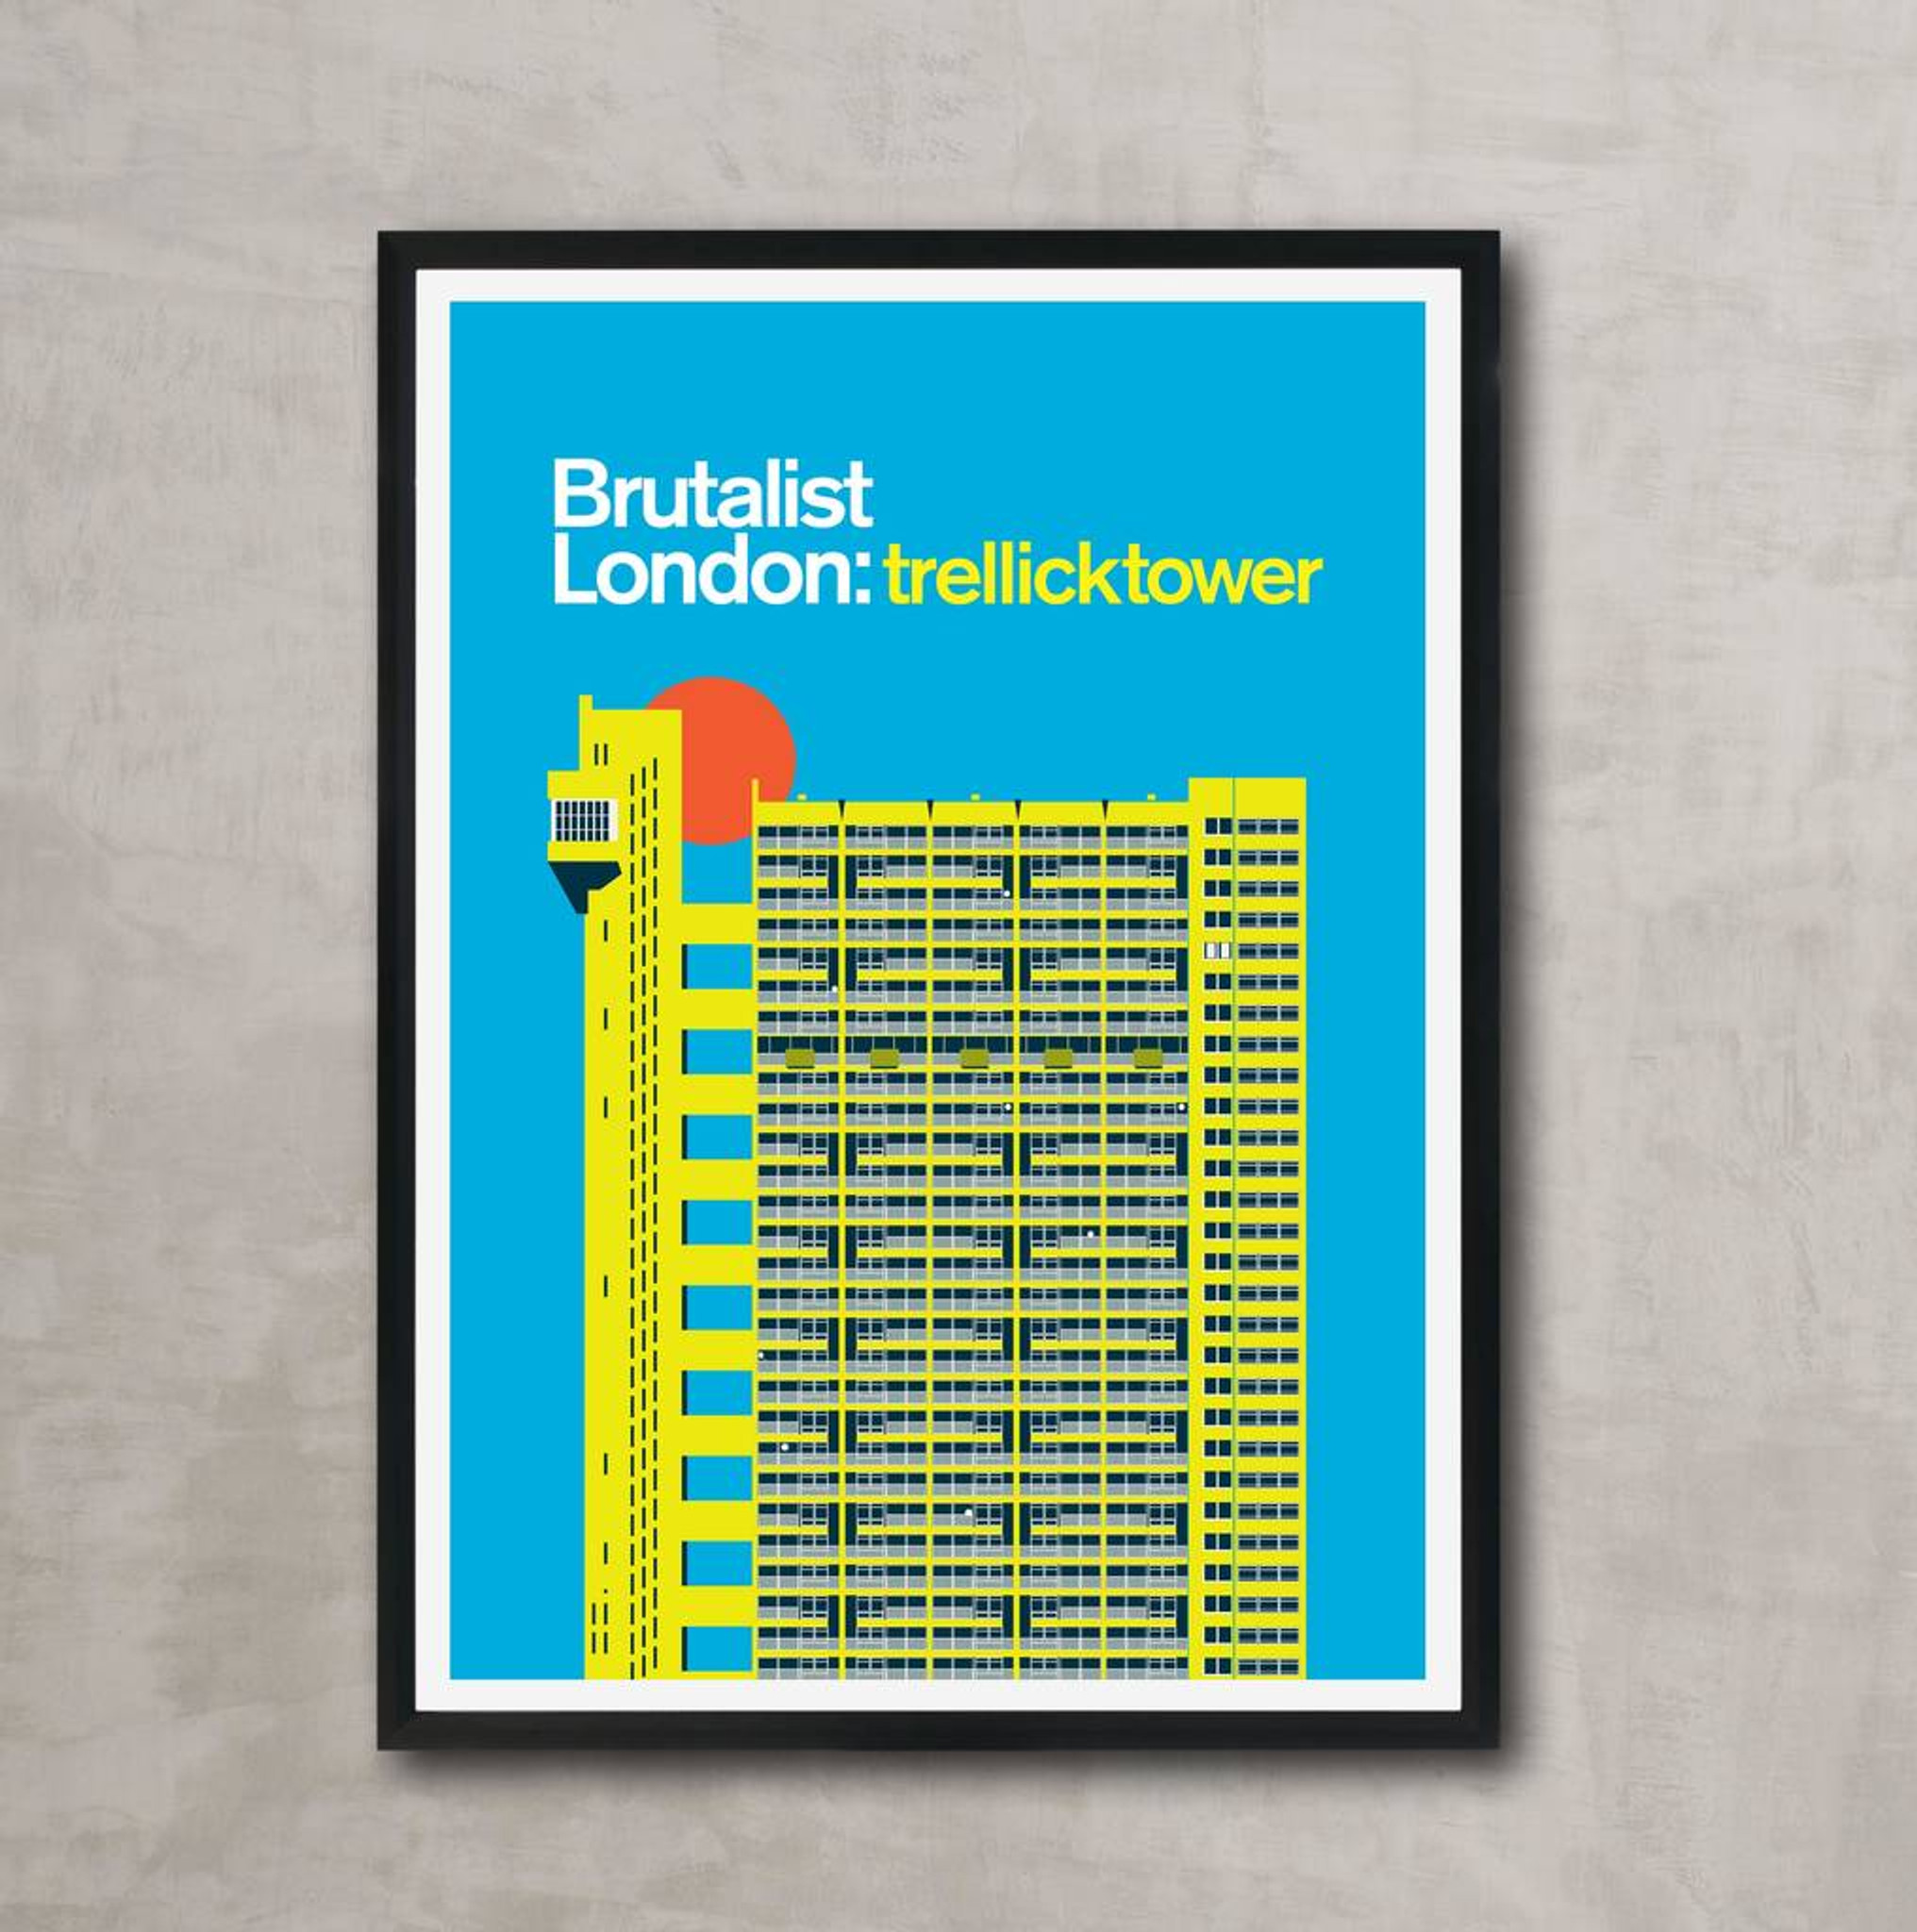 Brutalist London: Trellick Tower